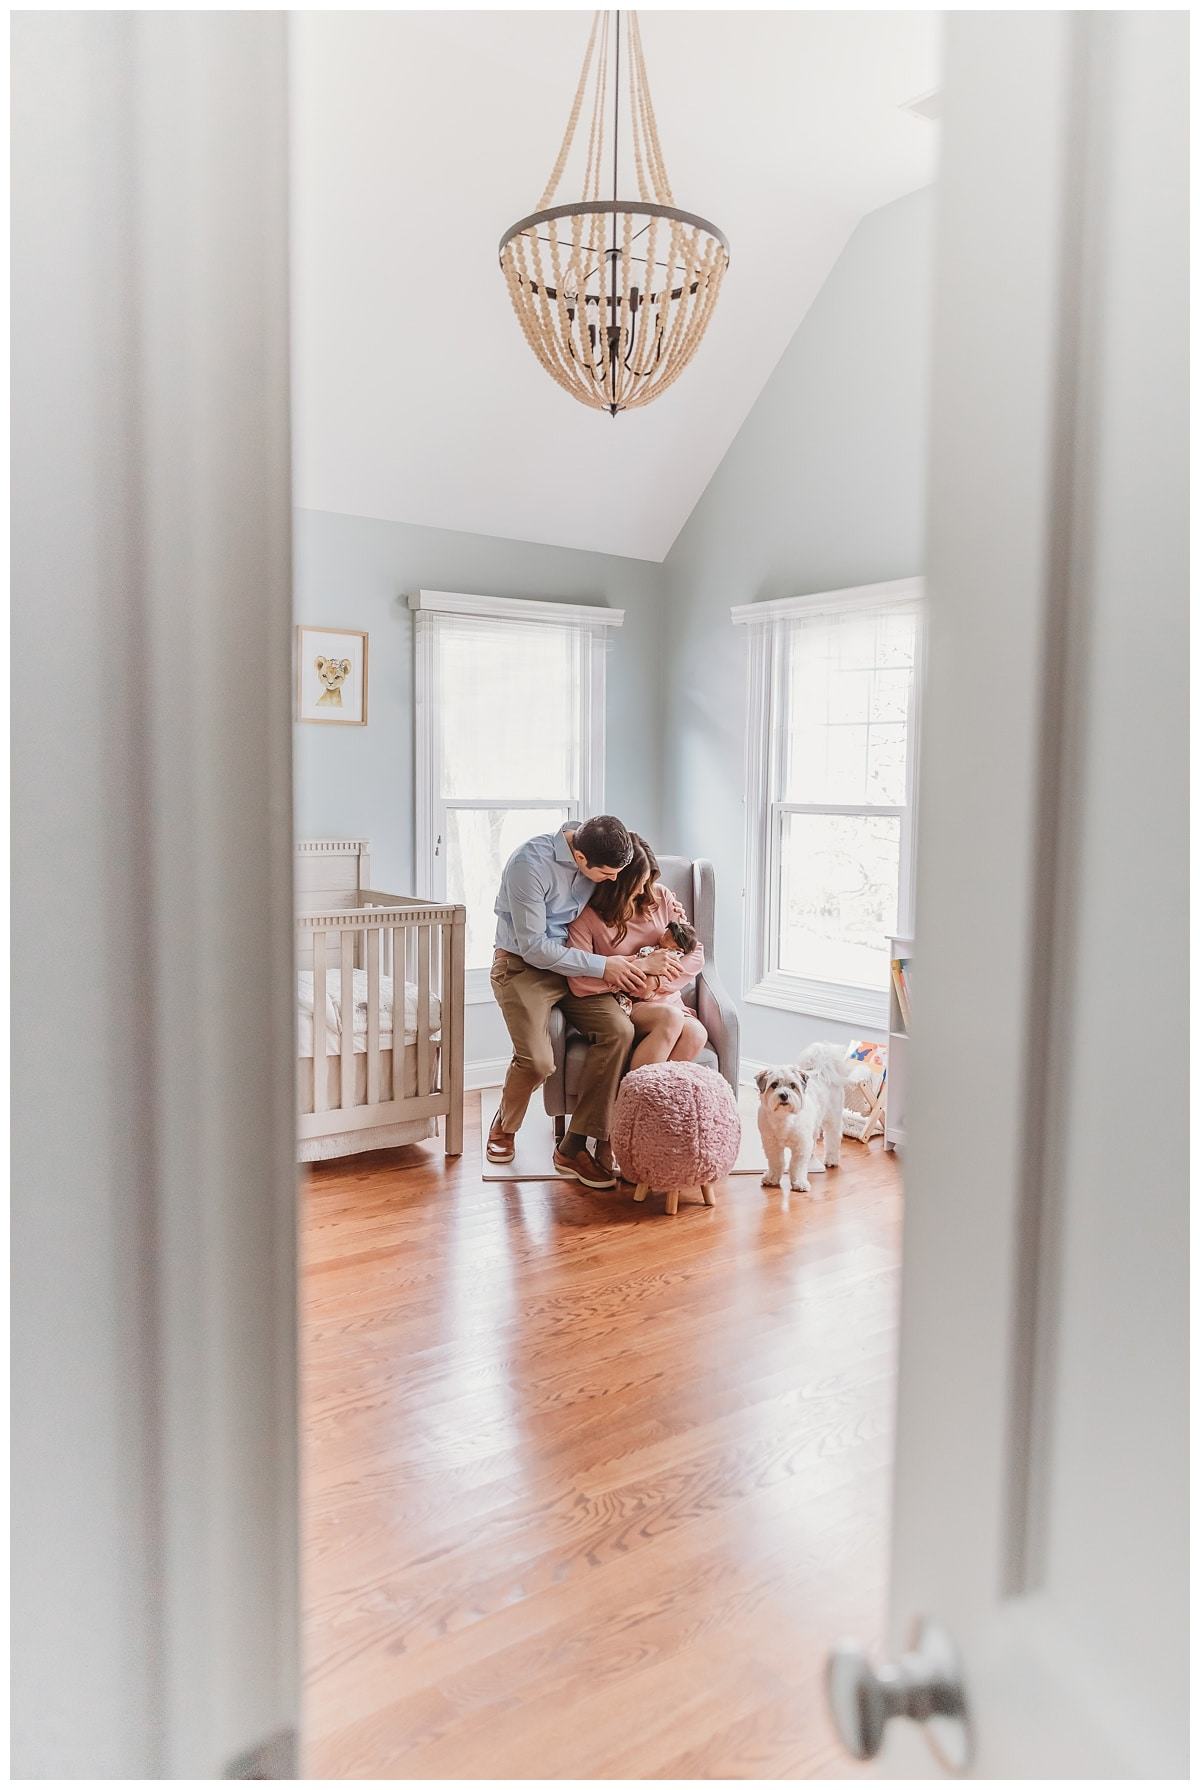 maternity-newborn-baby-children-family-photographer-Downers-Grove-Hinsdale-Summer-Brader-photography